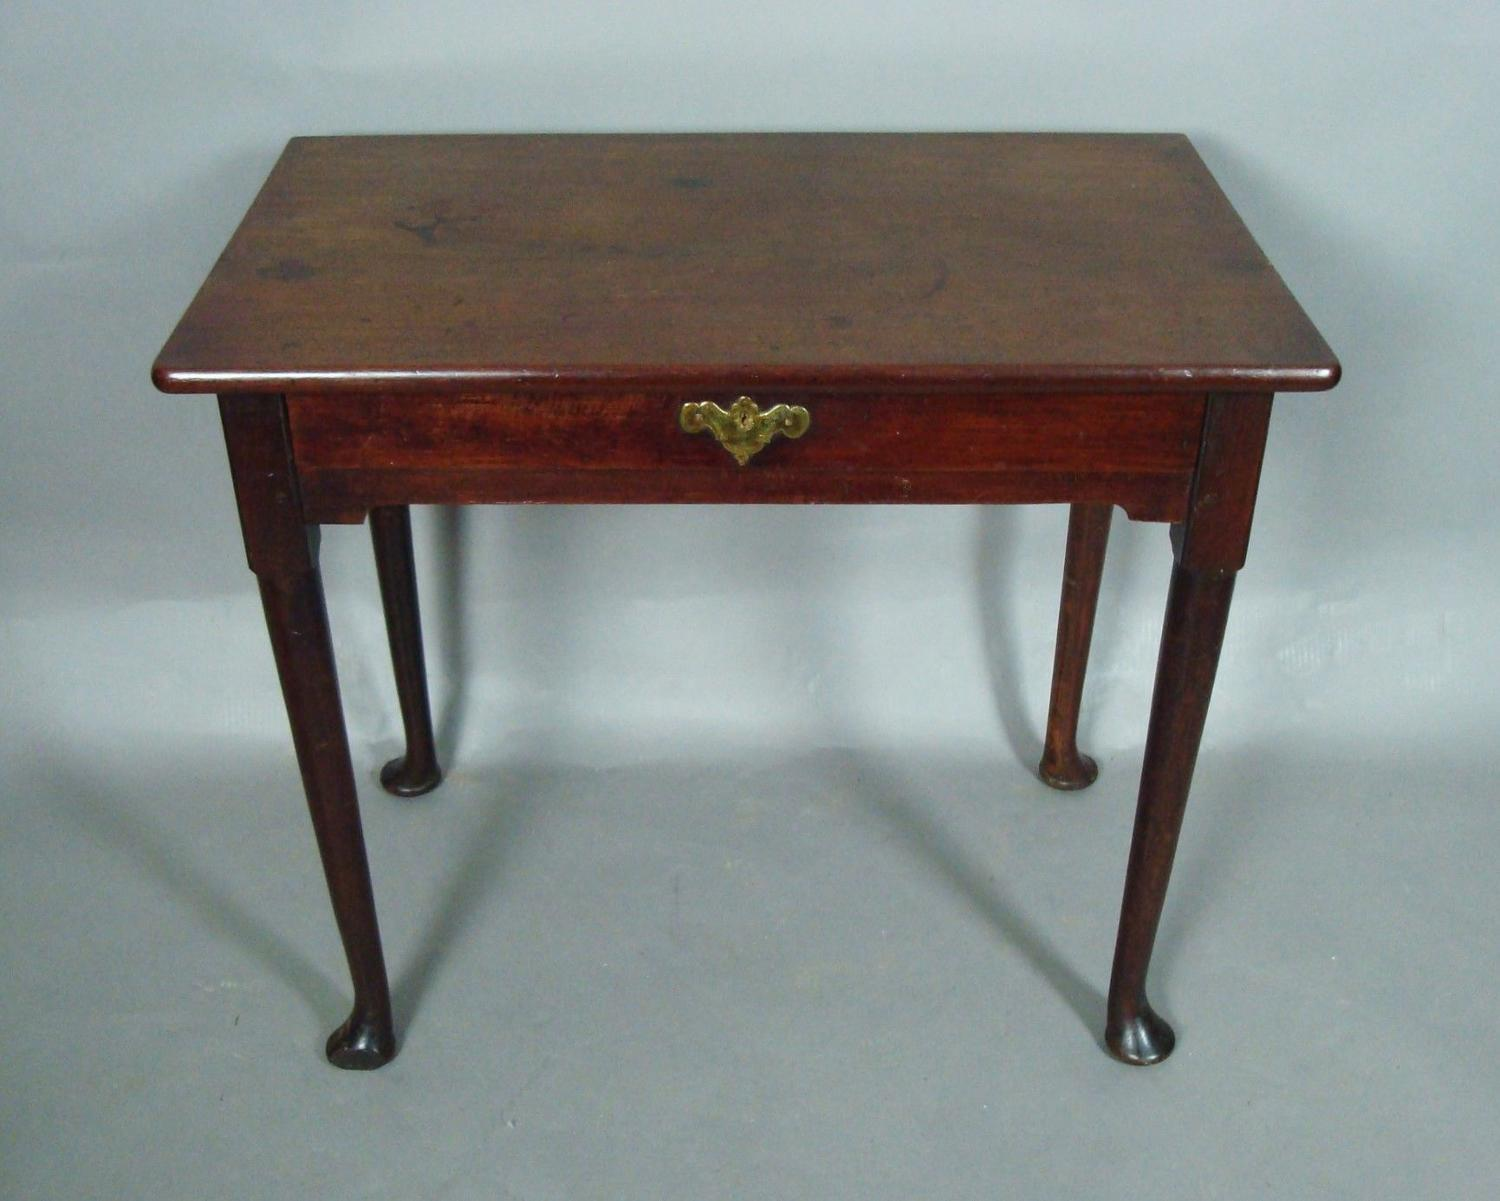 George II mahogany single drawer side table